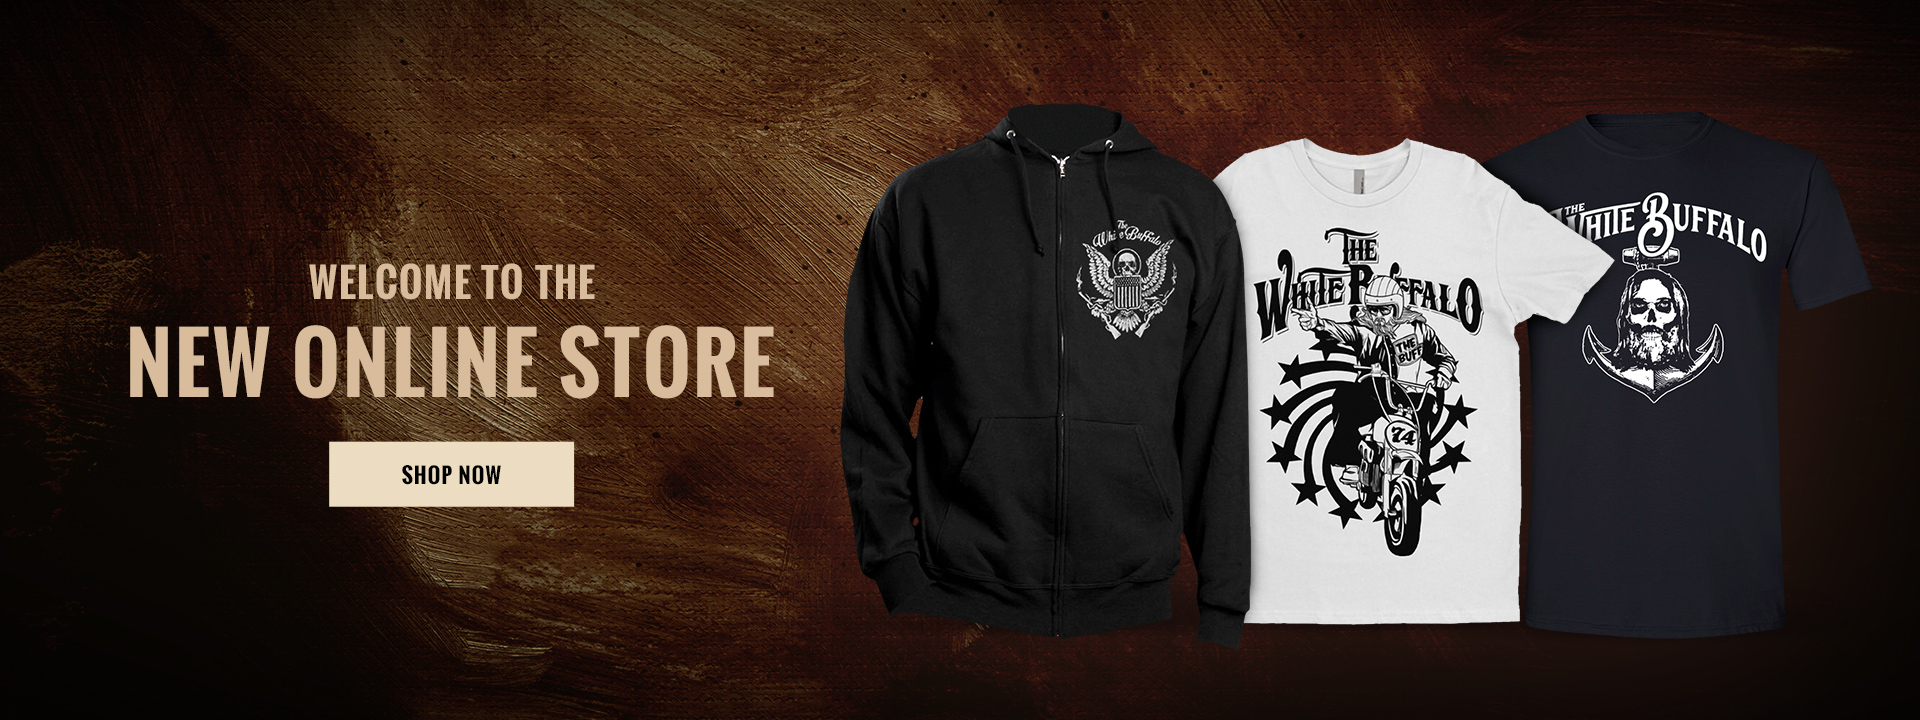 Welcome To The New Online Store